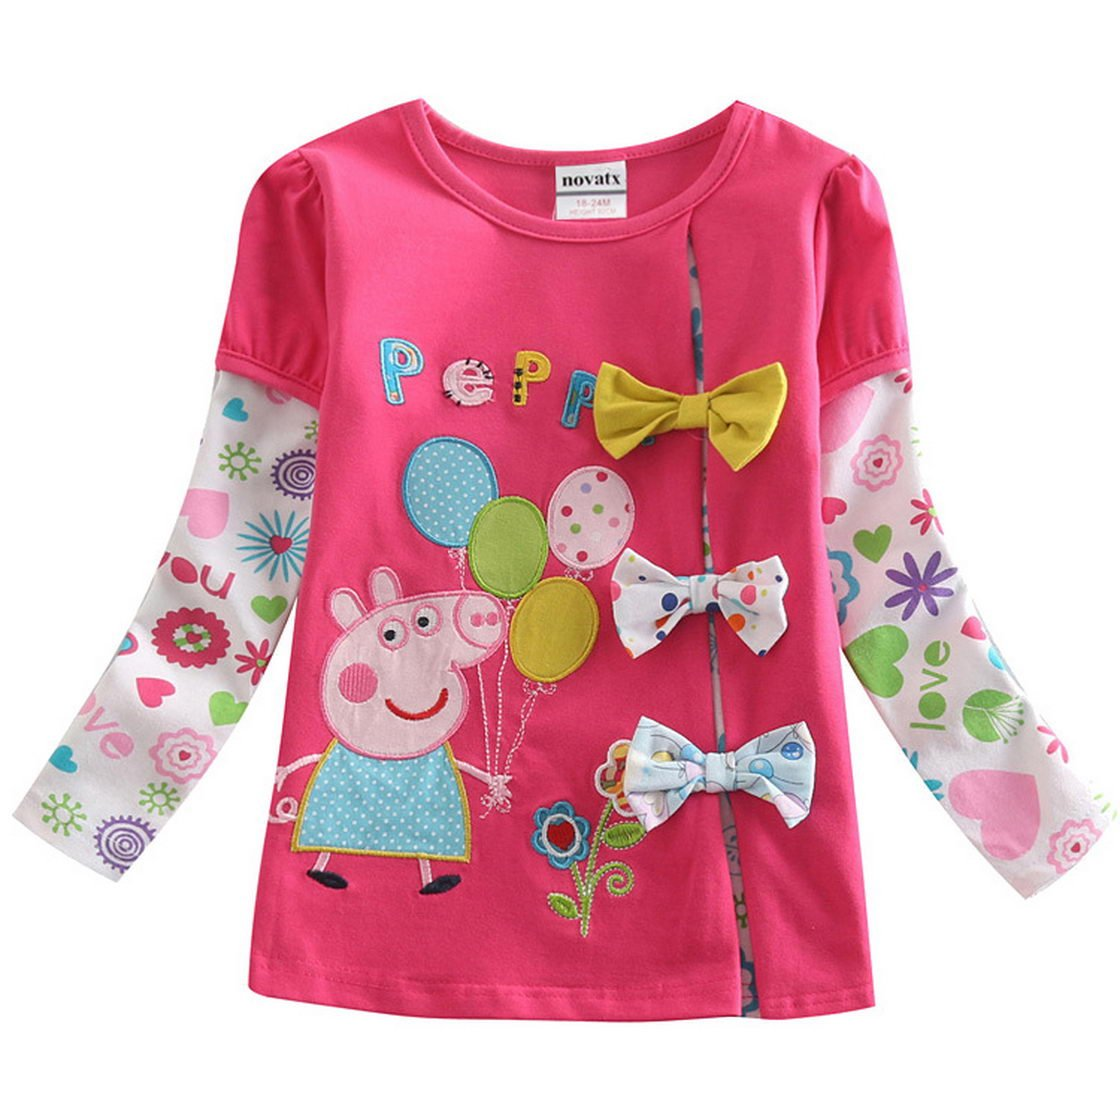 Peppa Pig Little Girl Long Sleeve Cartoon Embroidered Cotton T-Shirts, 1-6Y Tiful